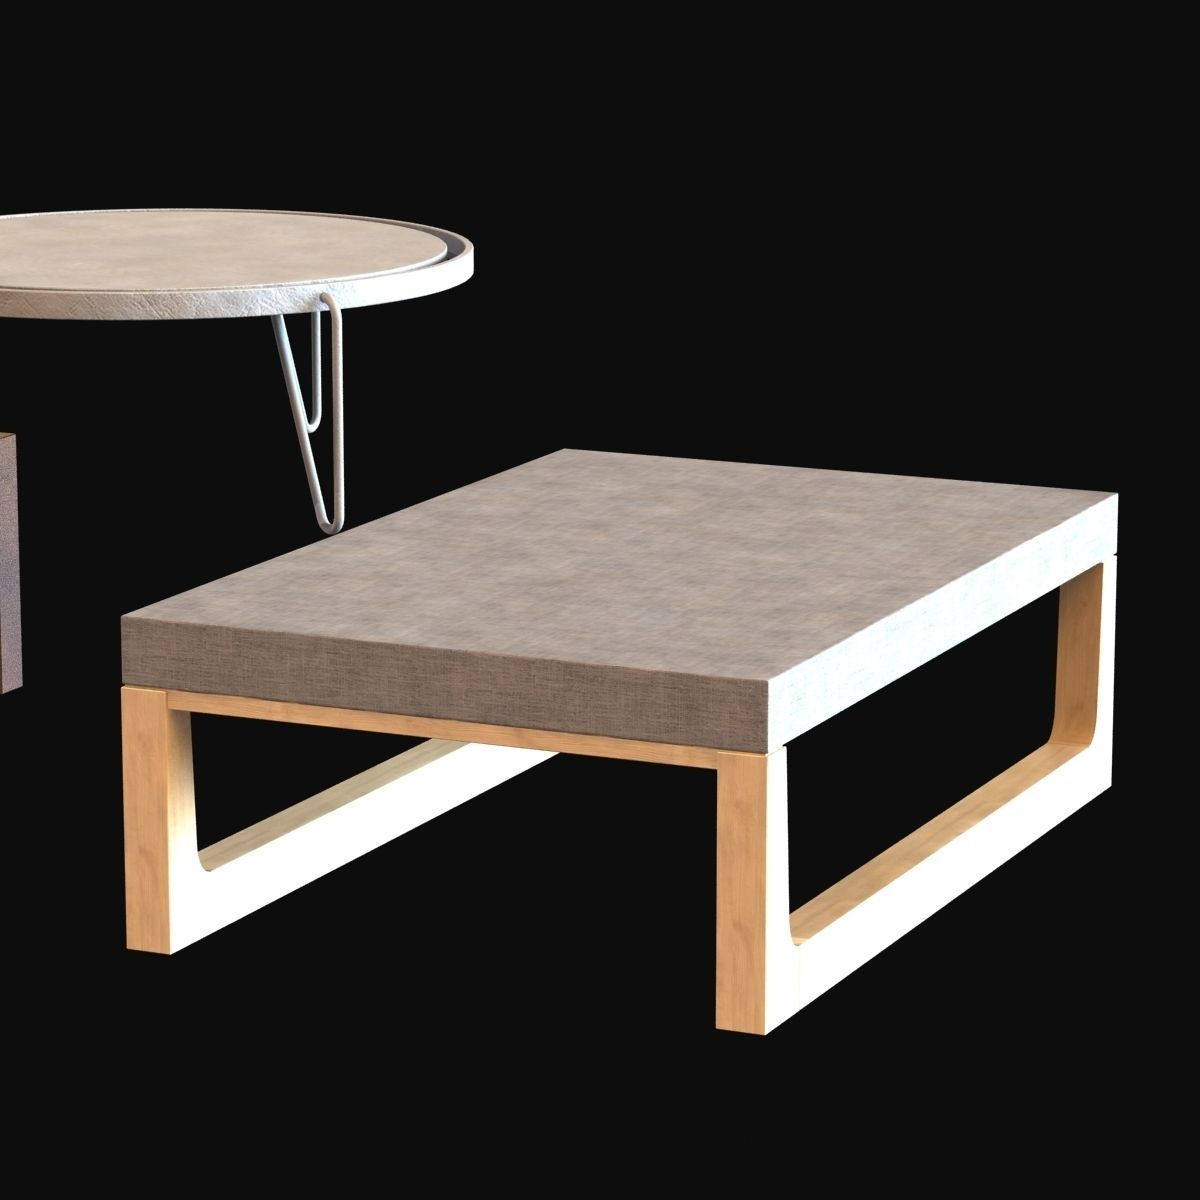 Tables collection 2 3d model max obj 3ds fbx for Table 3d model